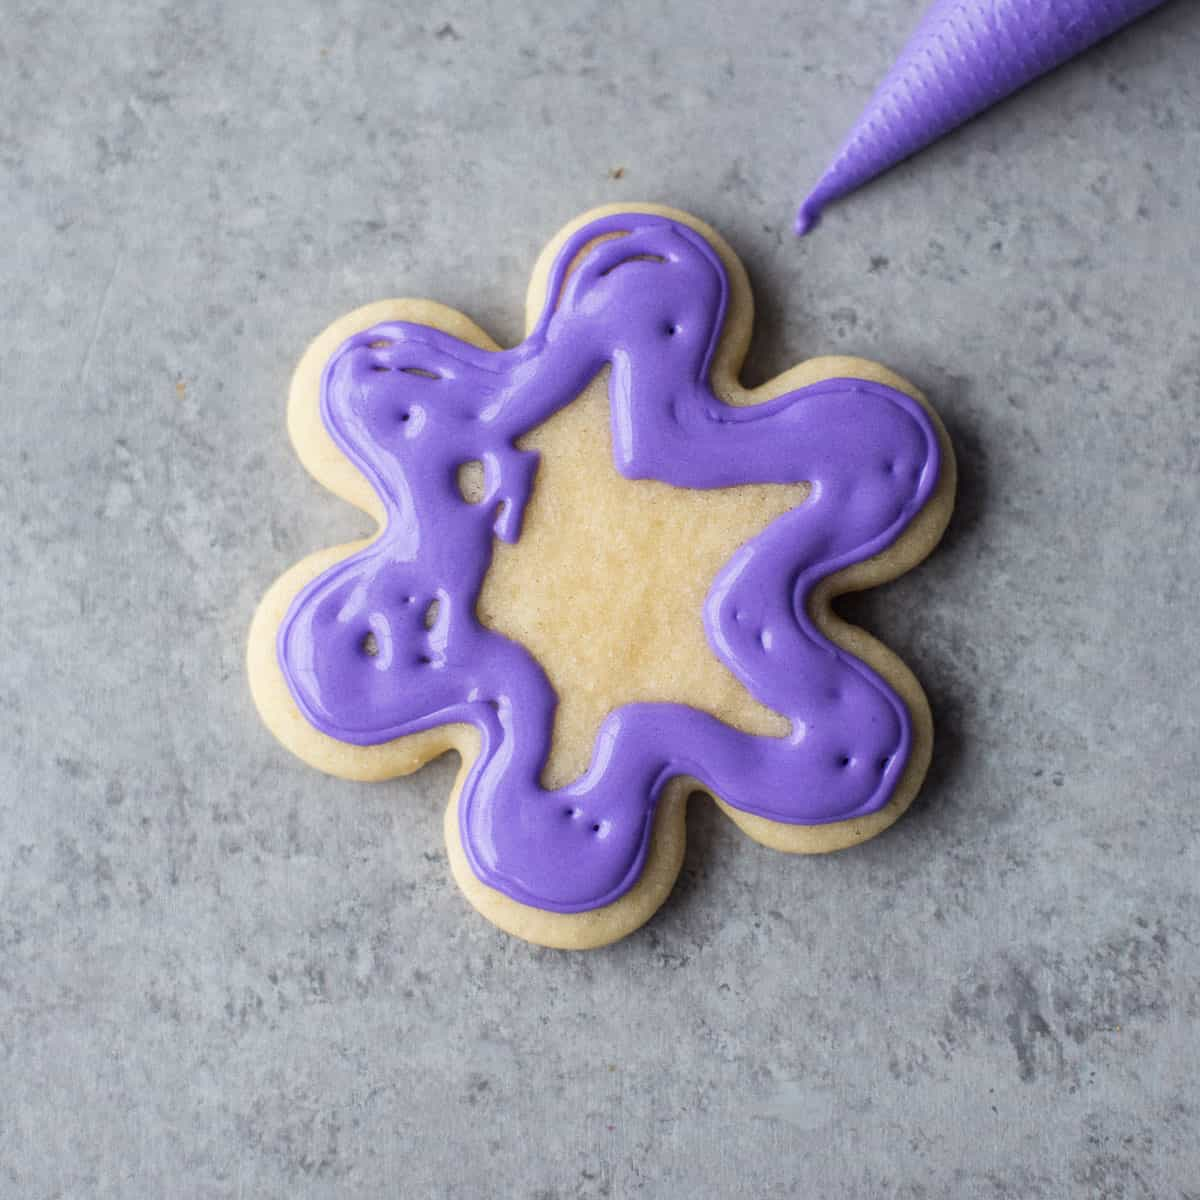 icing a sugar cookie with purple icing